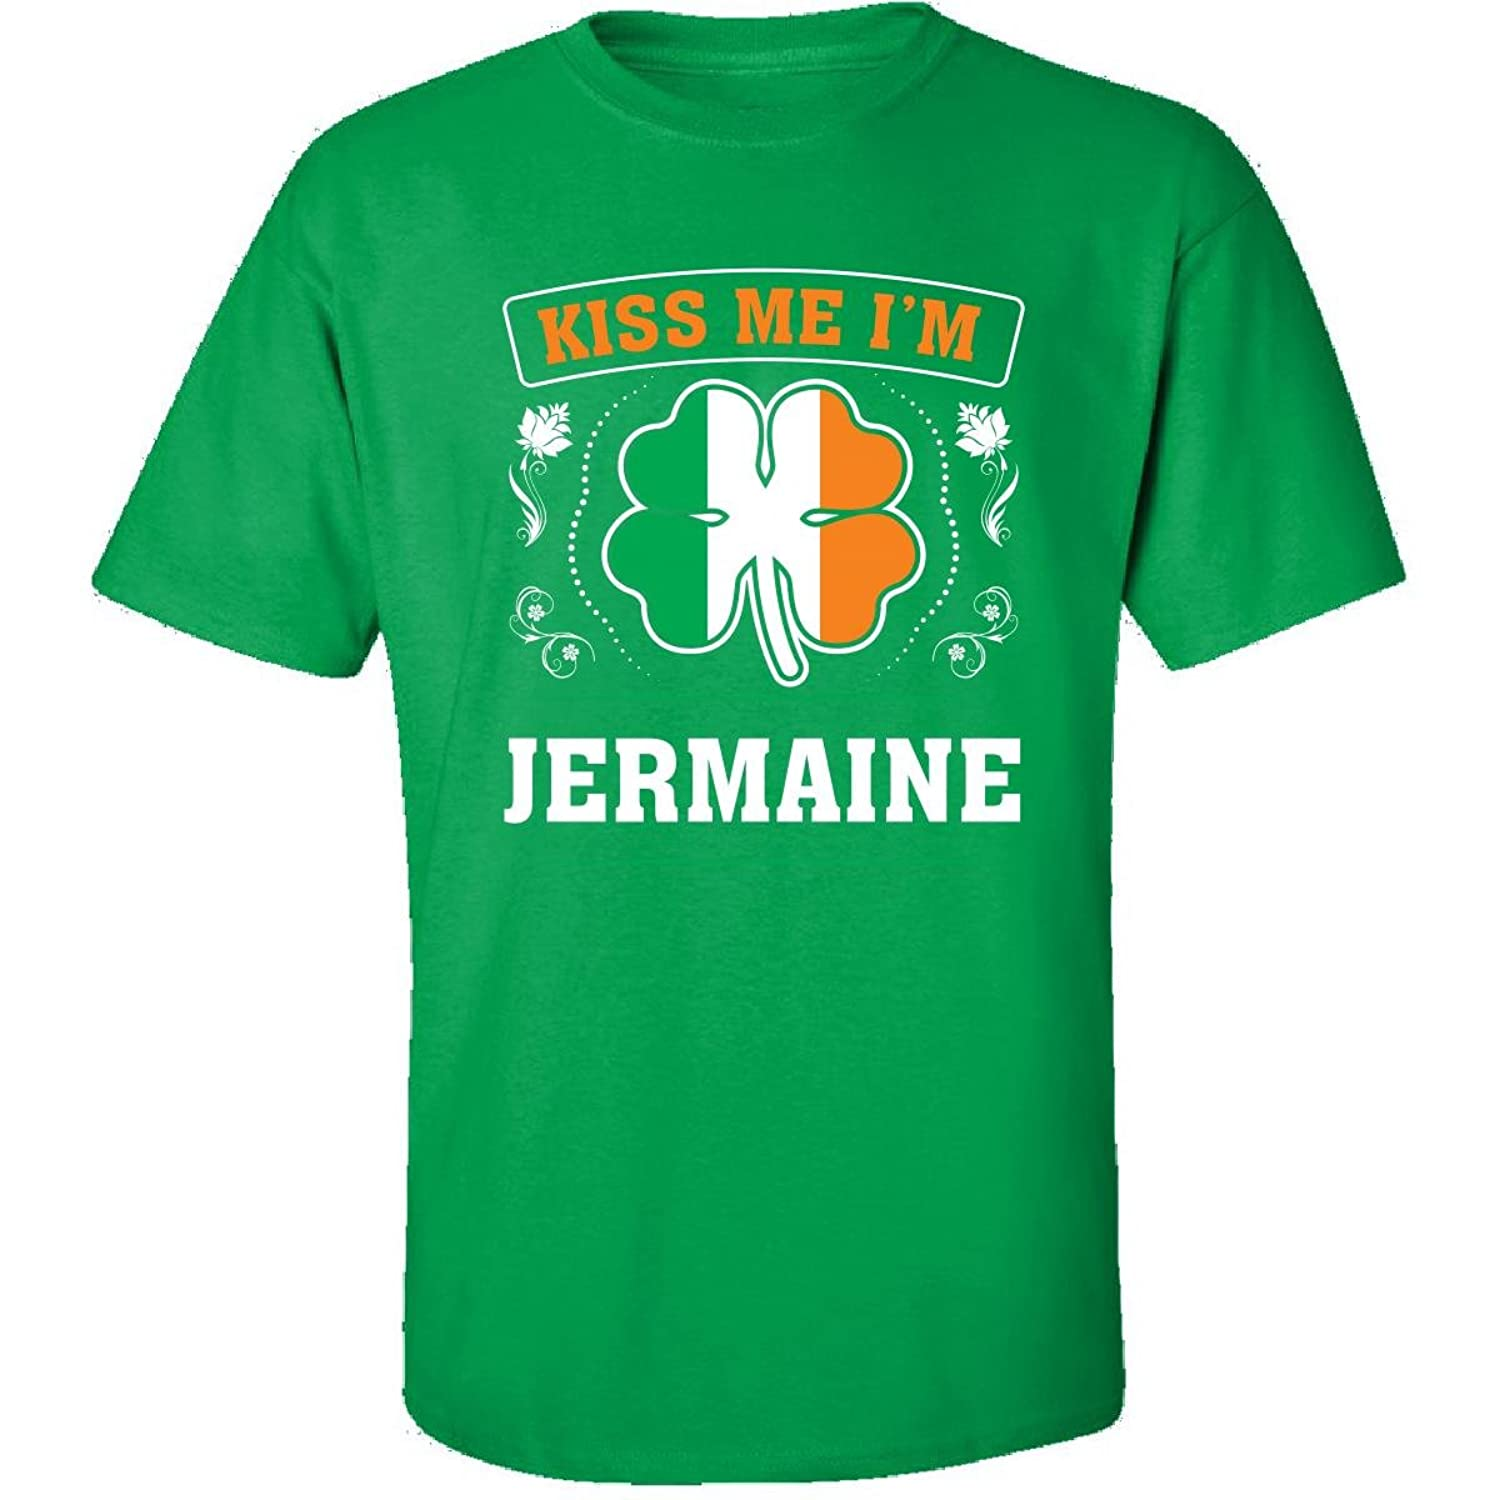 Kiss Me Im Jermaine And Irish St Patricks Day Gift - Adult Shirt